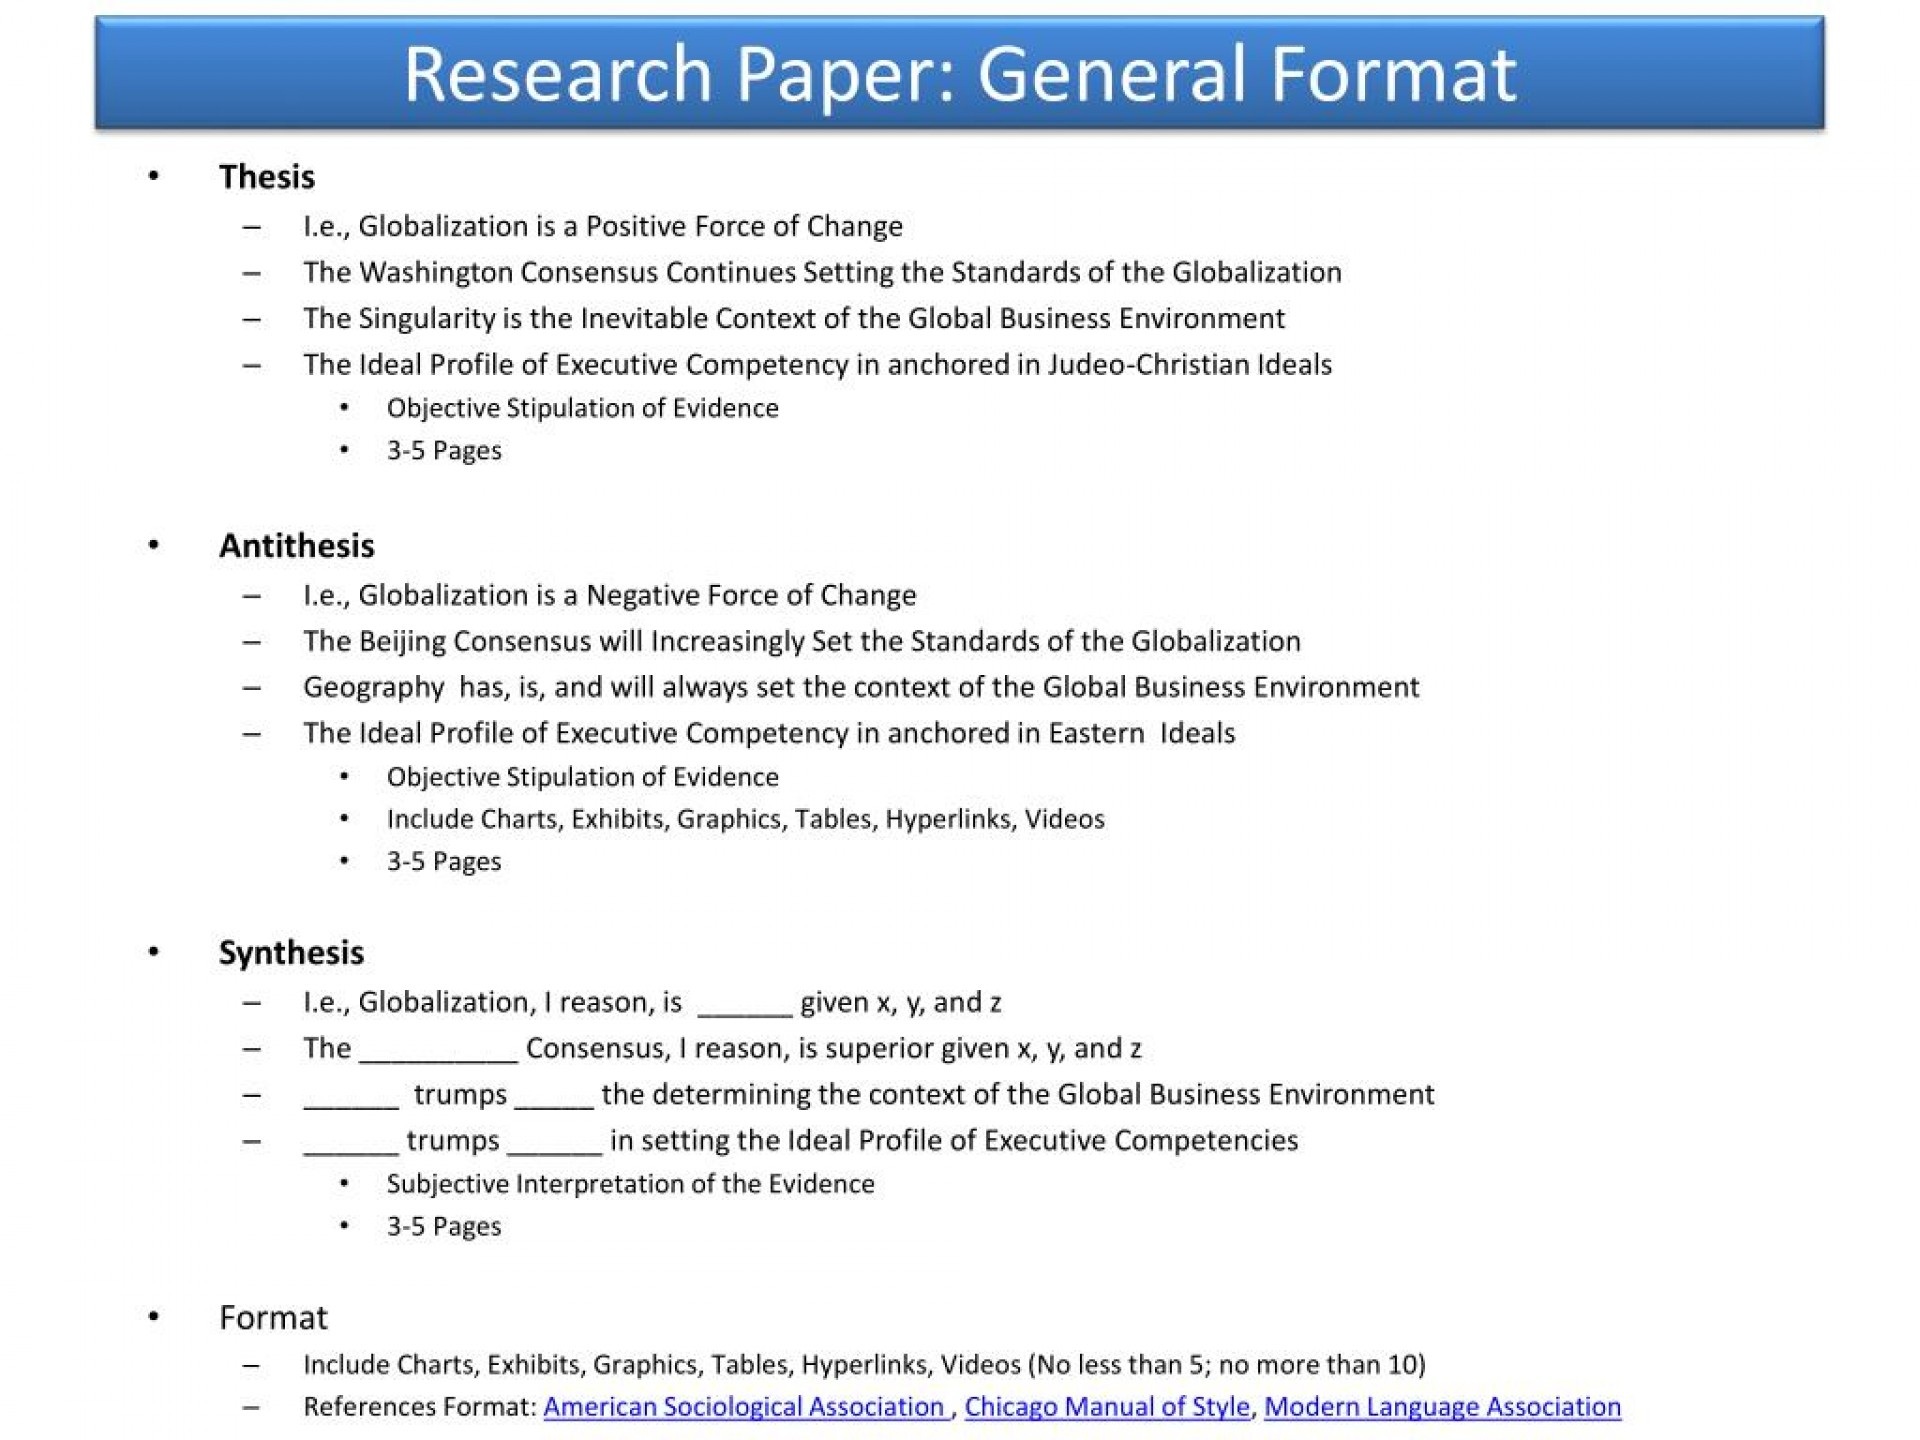 009 Research Paper Powerpoint Presentation Format For General Unique Sample Ppt 1920